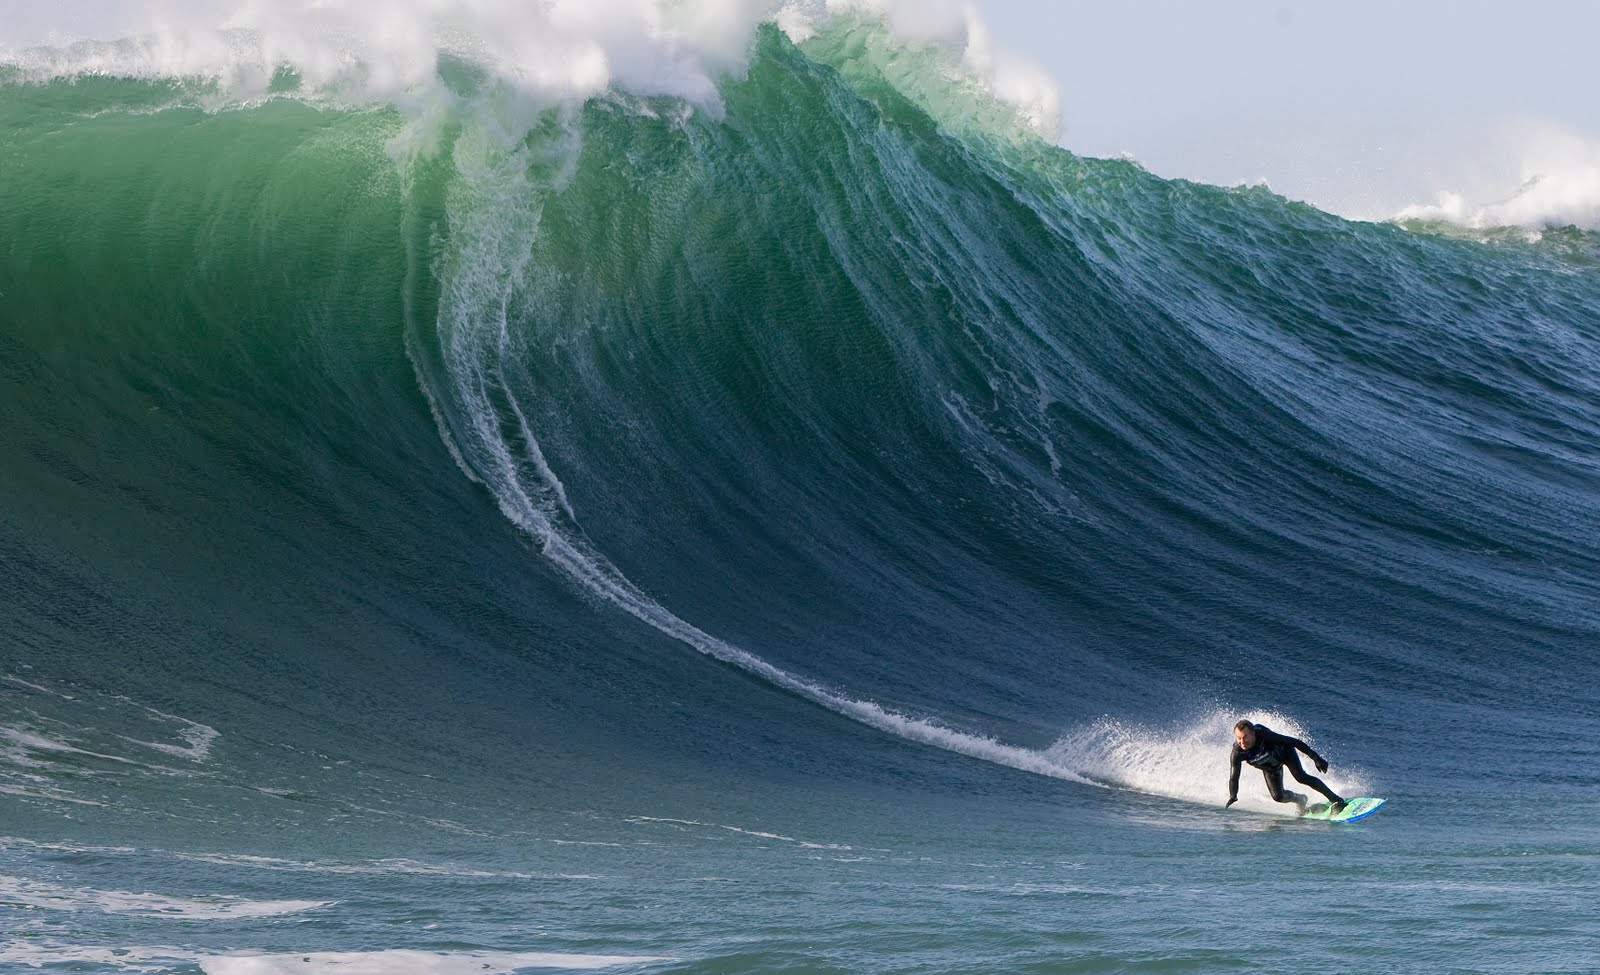 jeff clark first person to surf mavericks